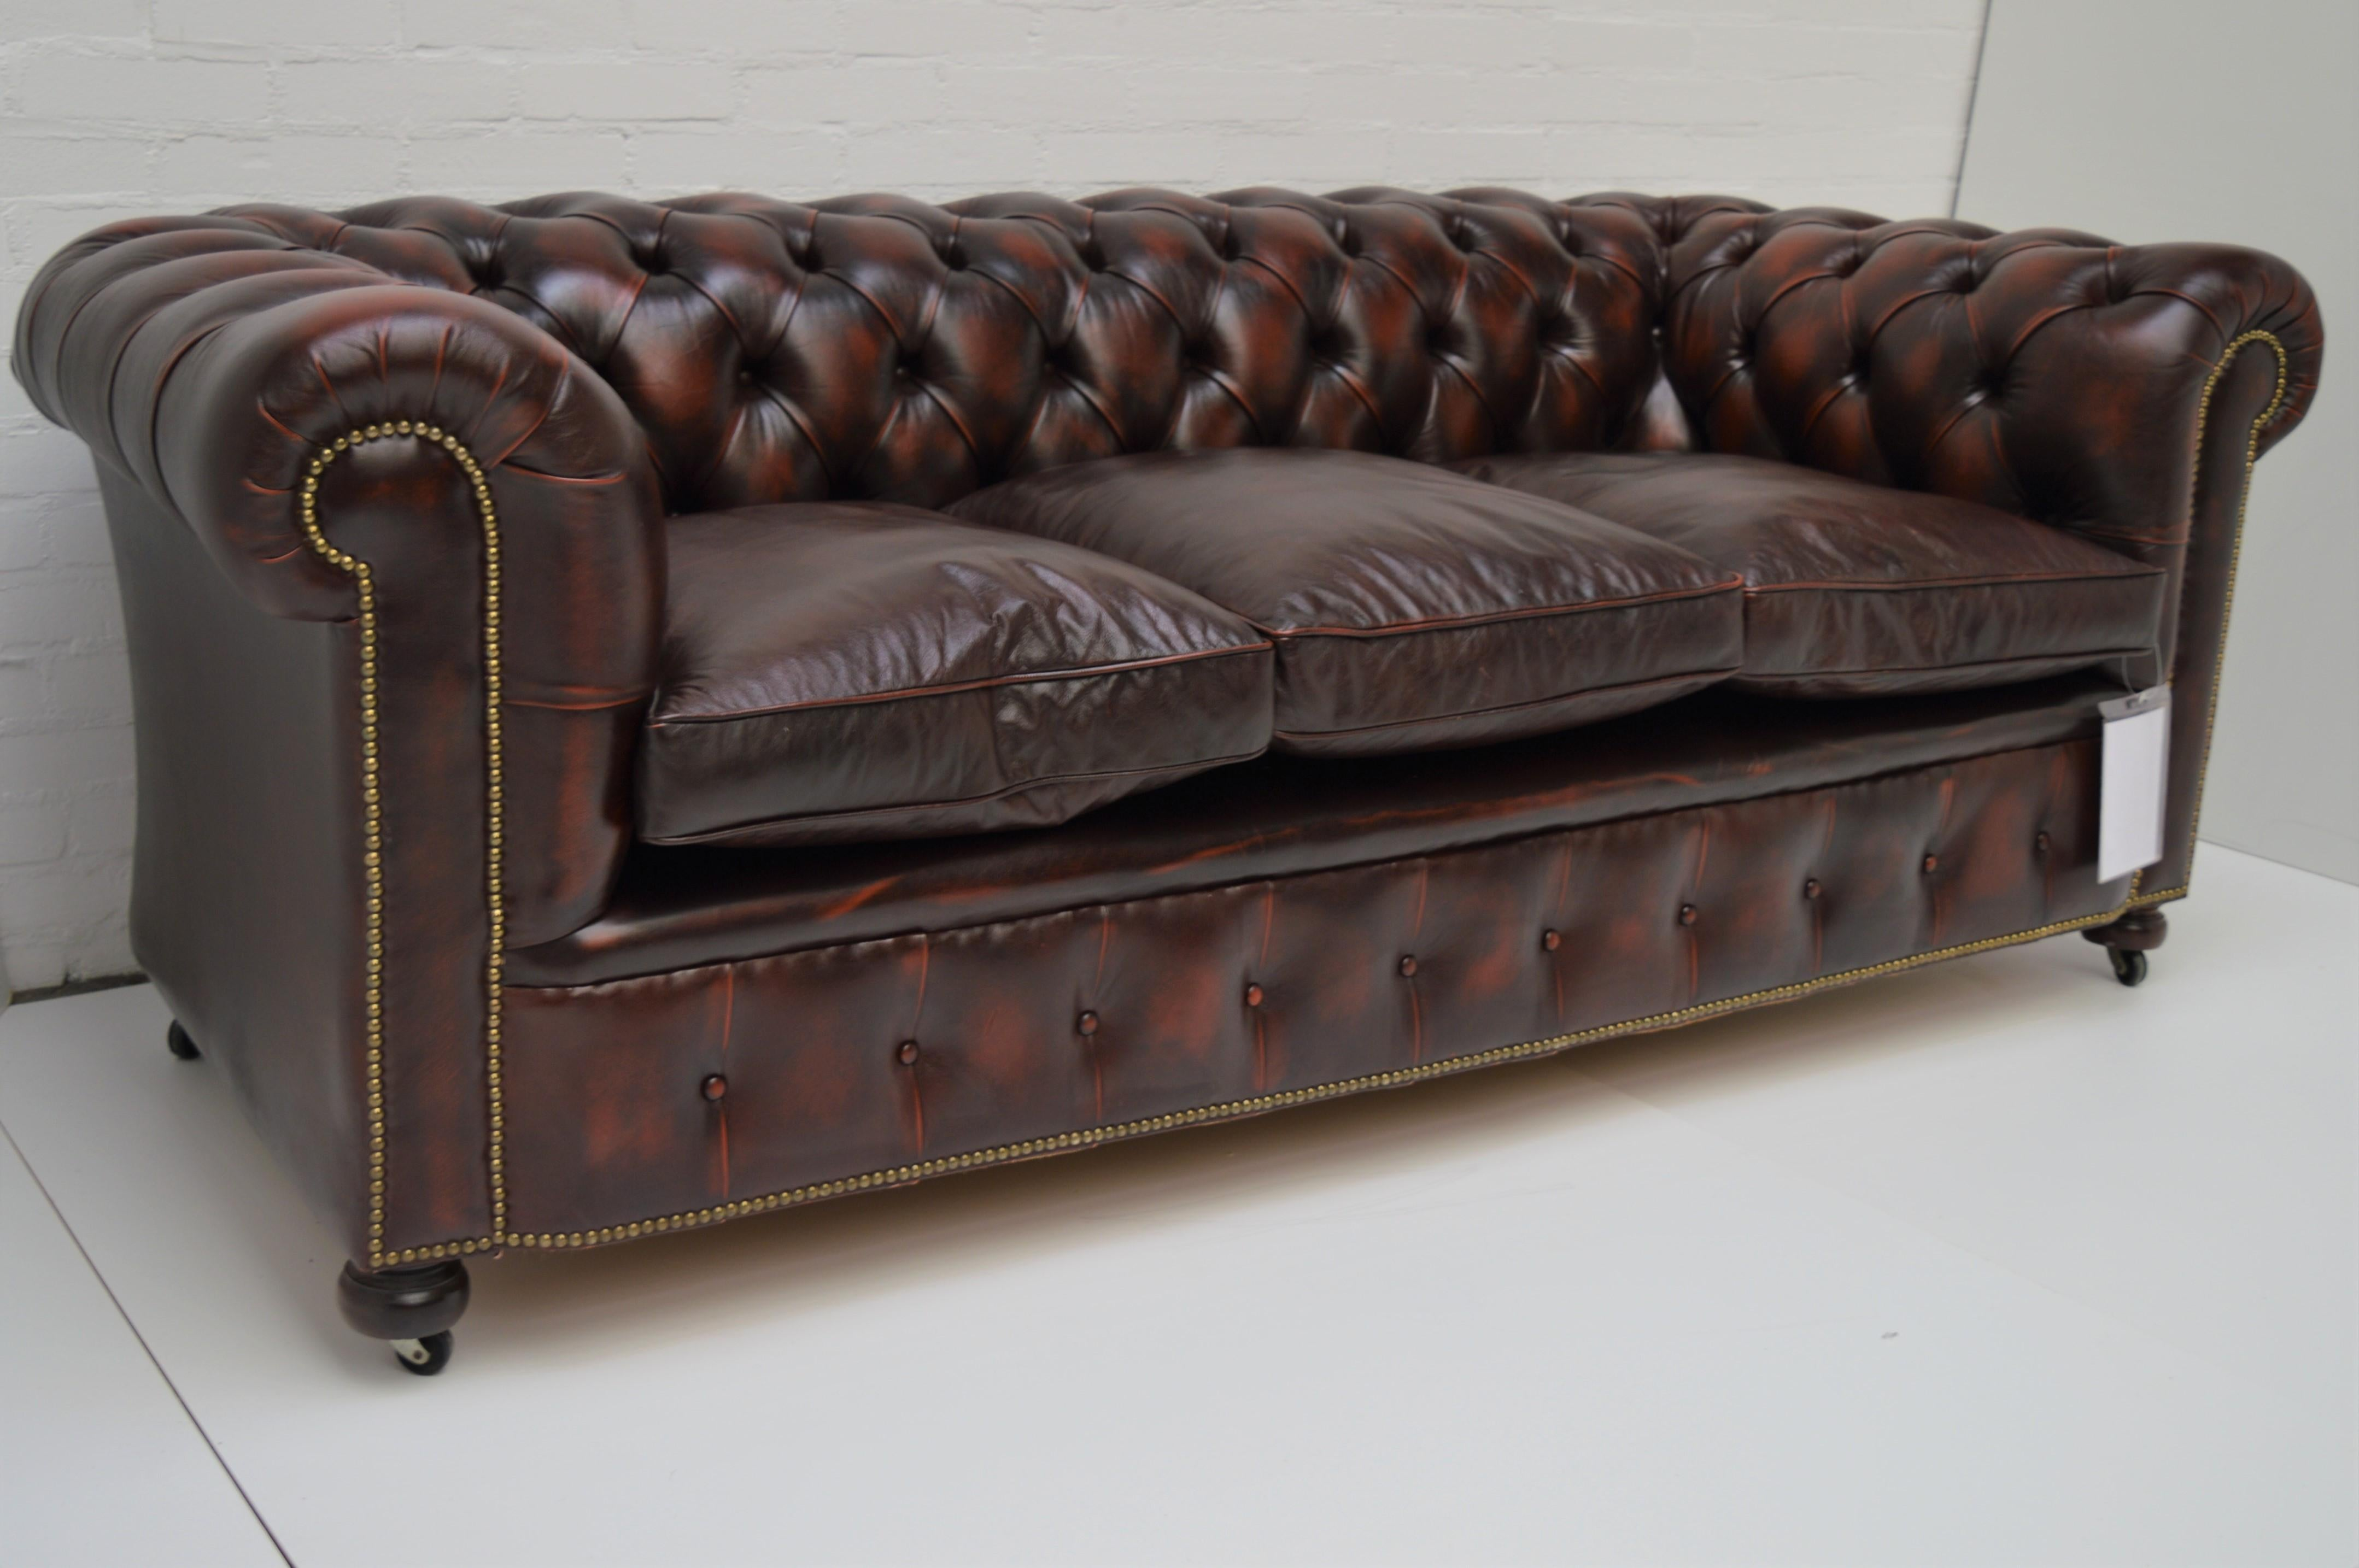 English Antique Tan Chesterfield Sofa With Brass Castors / Wheels For Sale